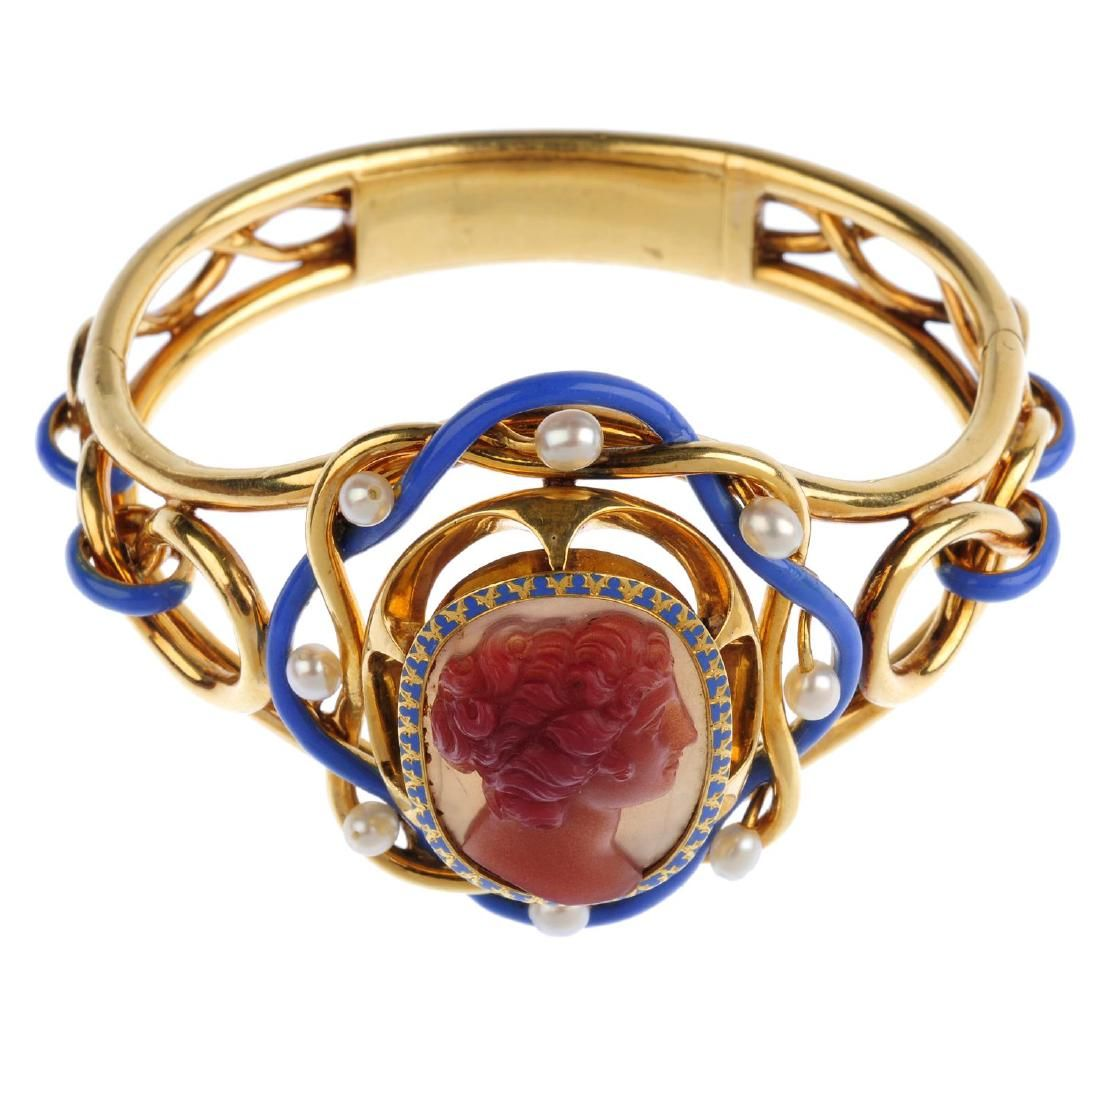 A mid Victorian gold, hardstone cameo, cultured pearl